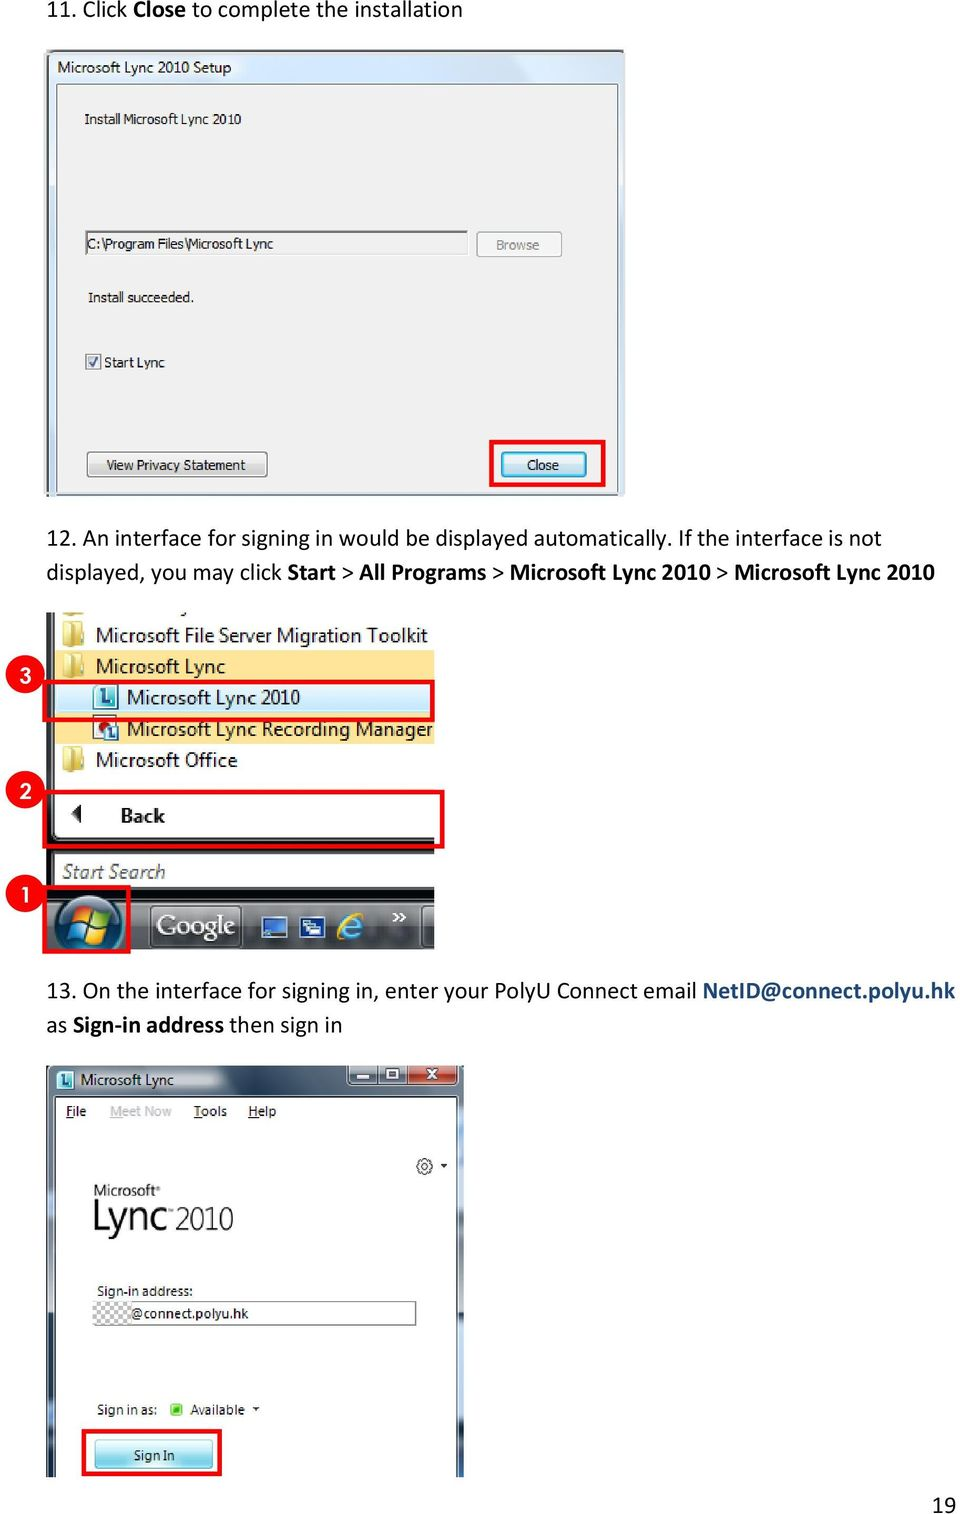 If the interface is not displayed, you may click Start > All Programs > Microsoft Lync